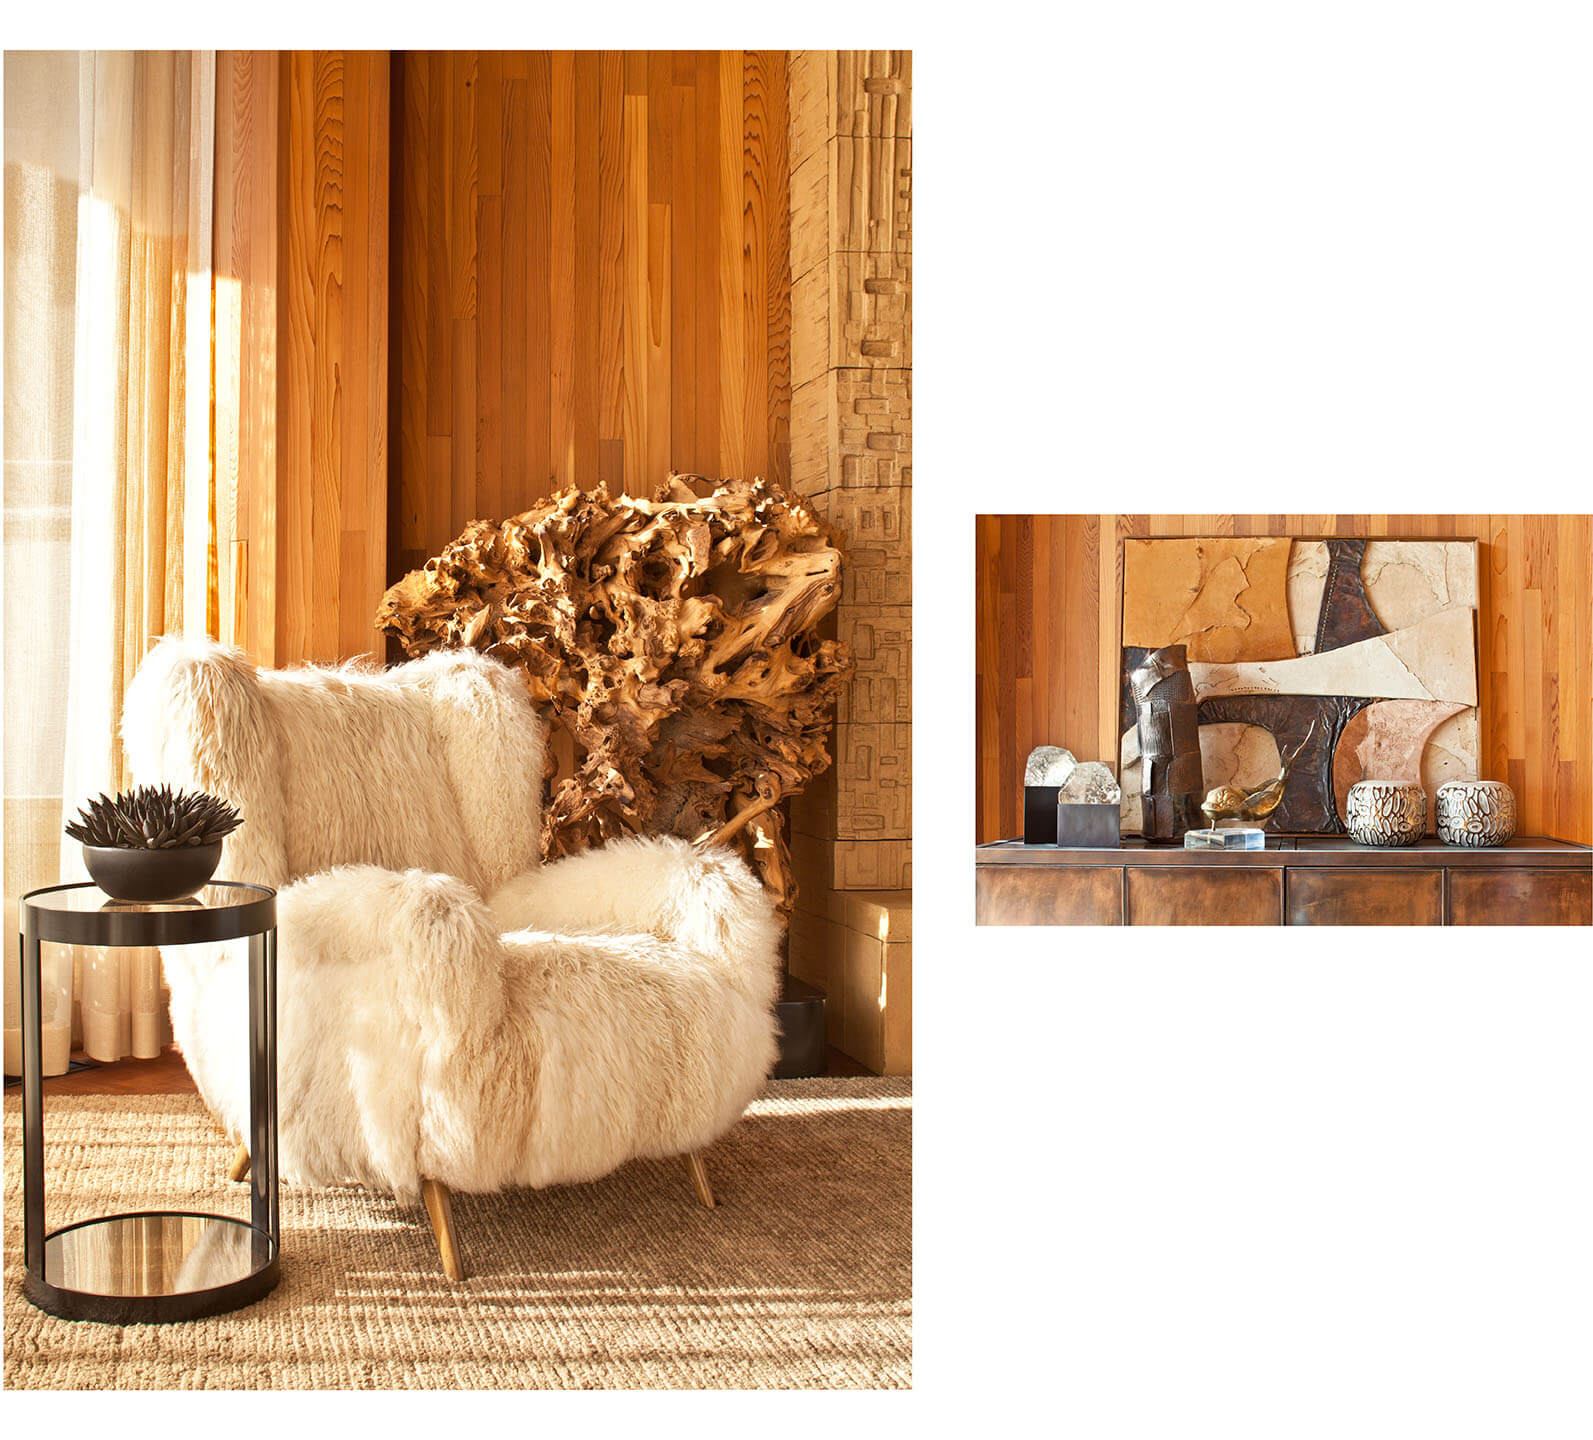 90 Best Images About Kelly Wearstler Interiors On: Kelly Wearstler Online Store: Kelly Wearstler Interior